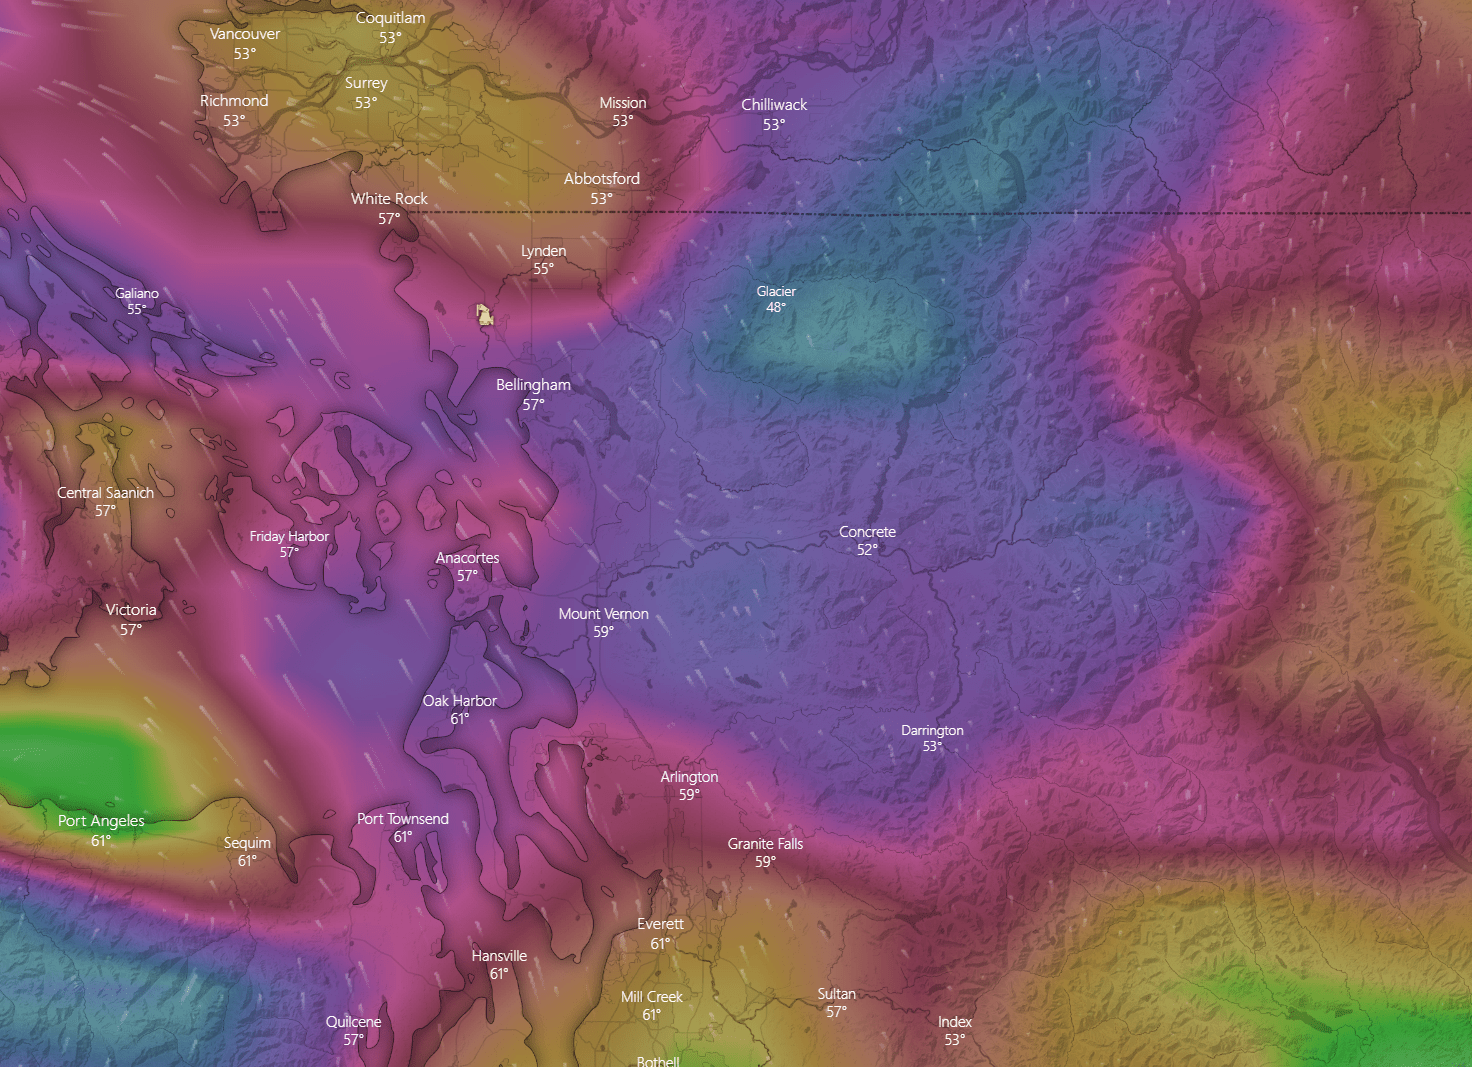 European Centre for Medium-Range Weather Forecasts (ECMWF) wind gust forecast for 6pm on Friday, September 17th Source: Windy.com